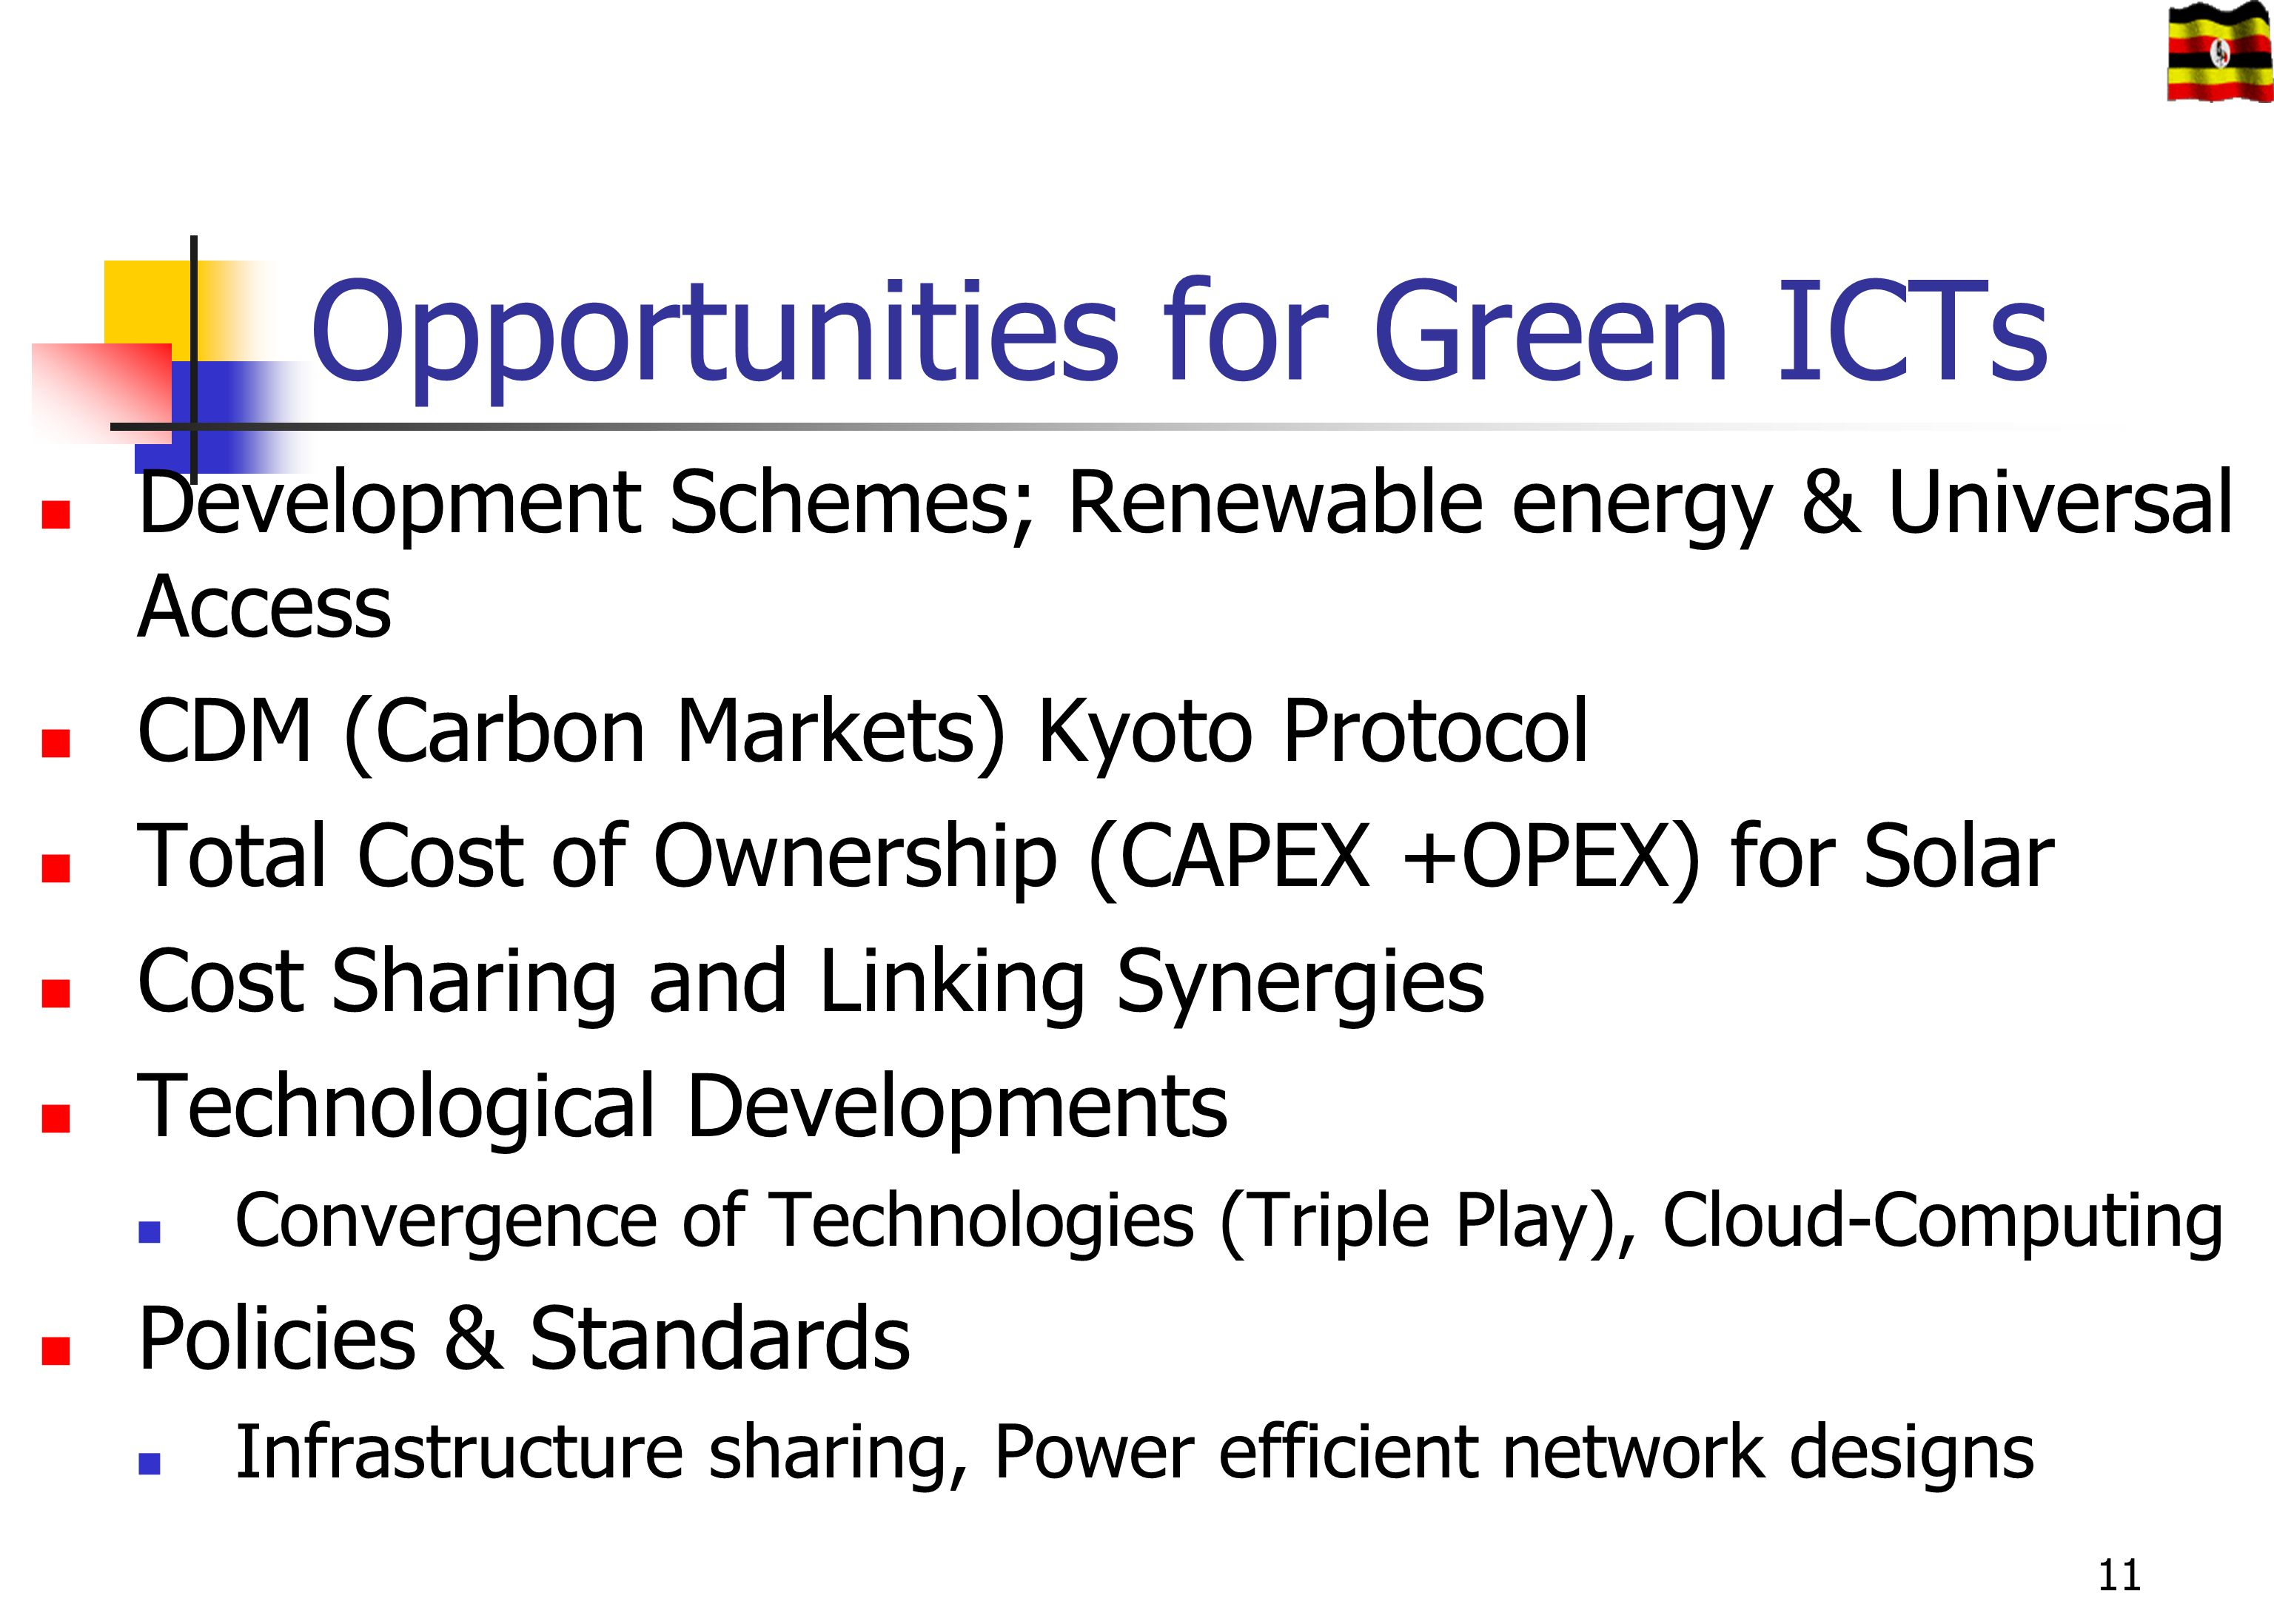 Opportunities for Green ICTs